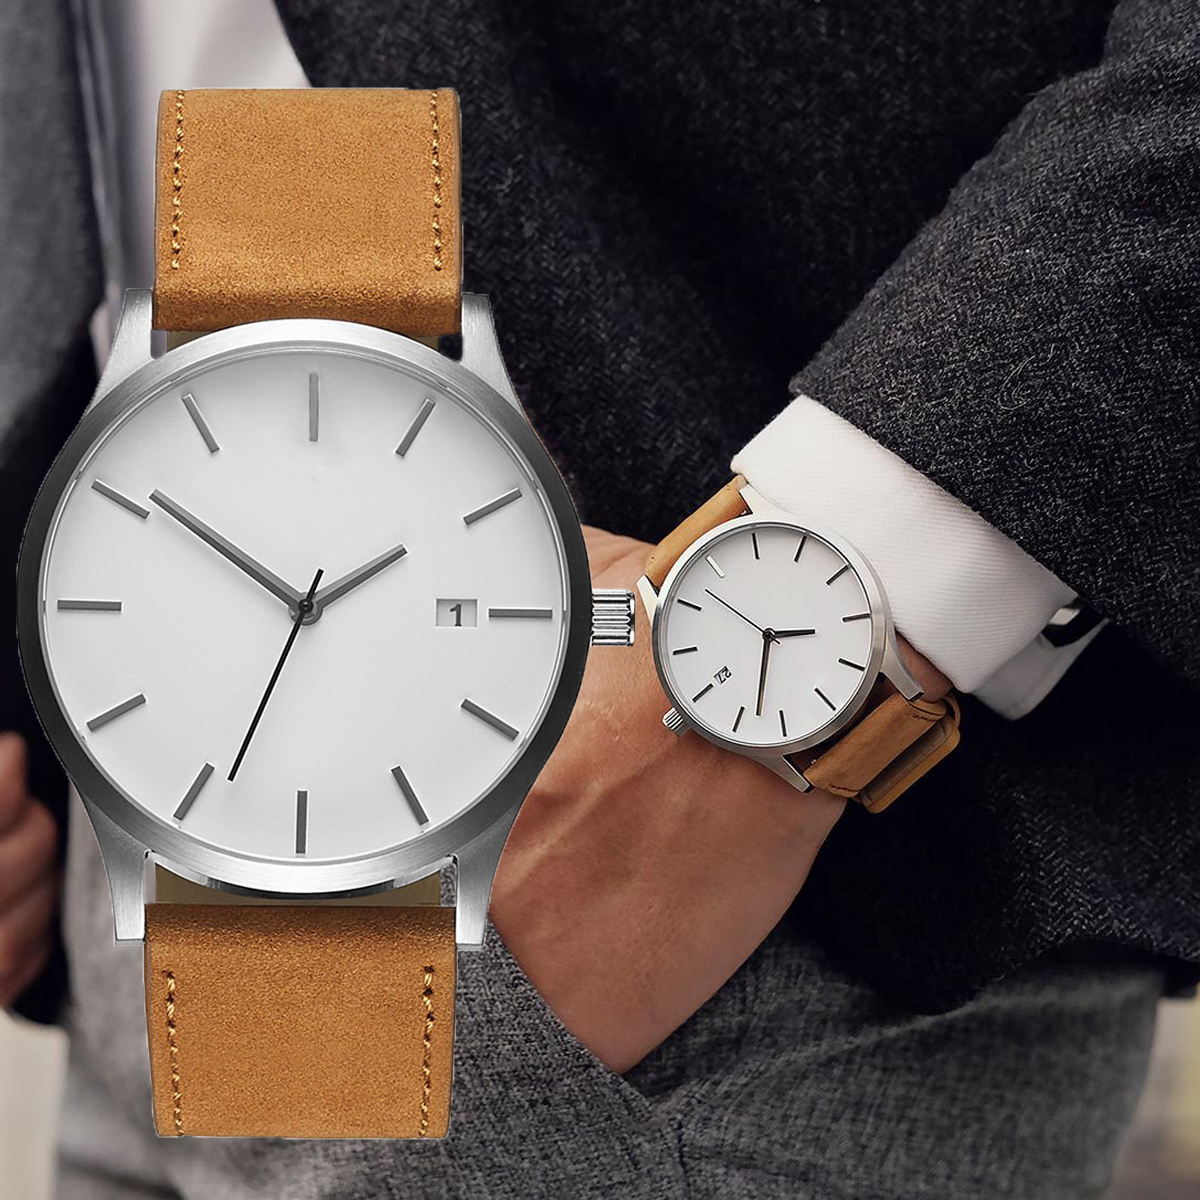 Men's Watch 2019 Unisex Fashion Leather Band Men Quartz Men's Wrist Watch Clock Minimalist Watch Montre Homme Erkek Kol Saati